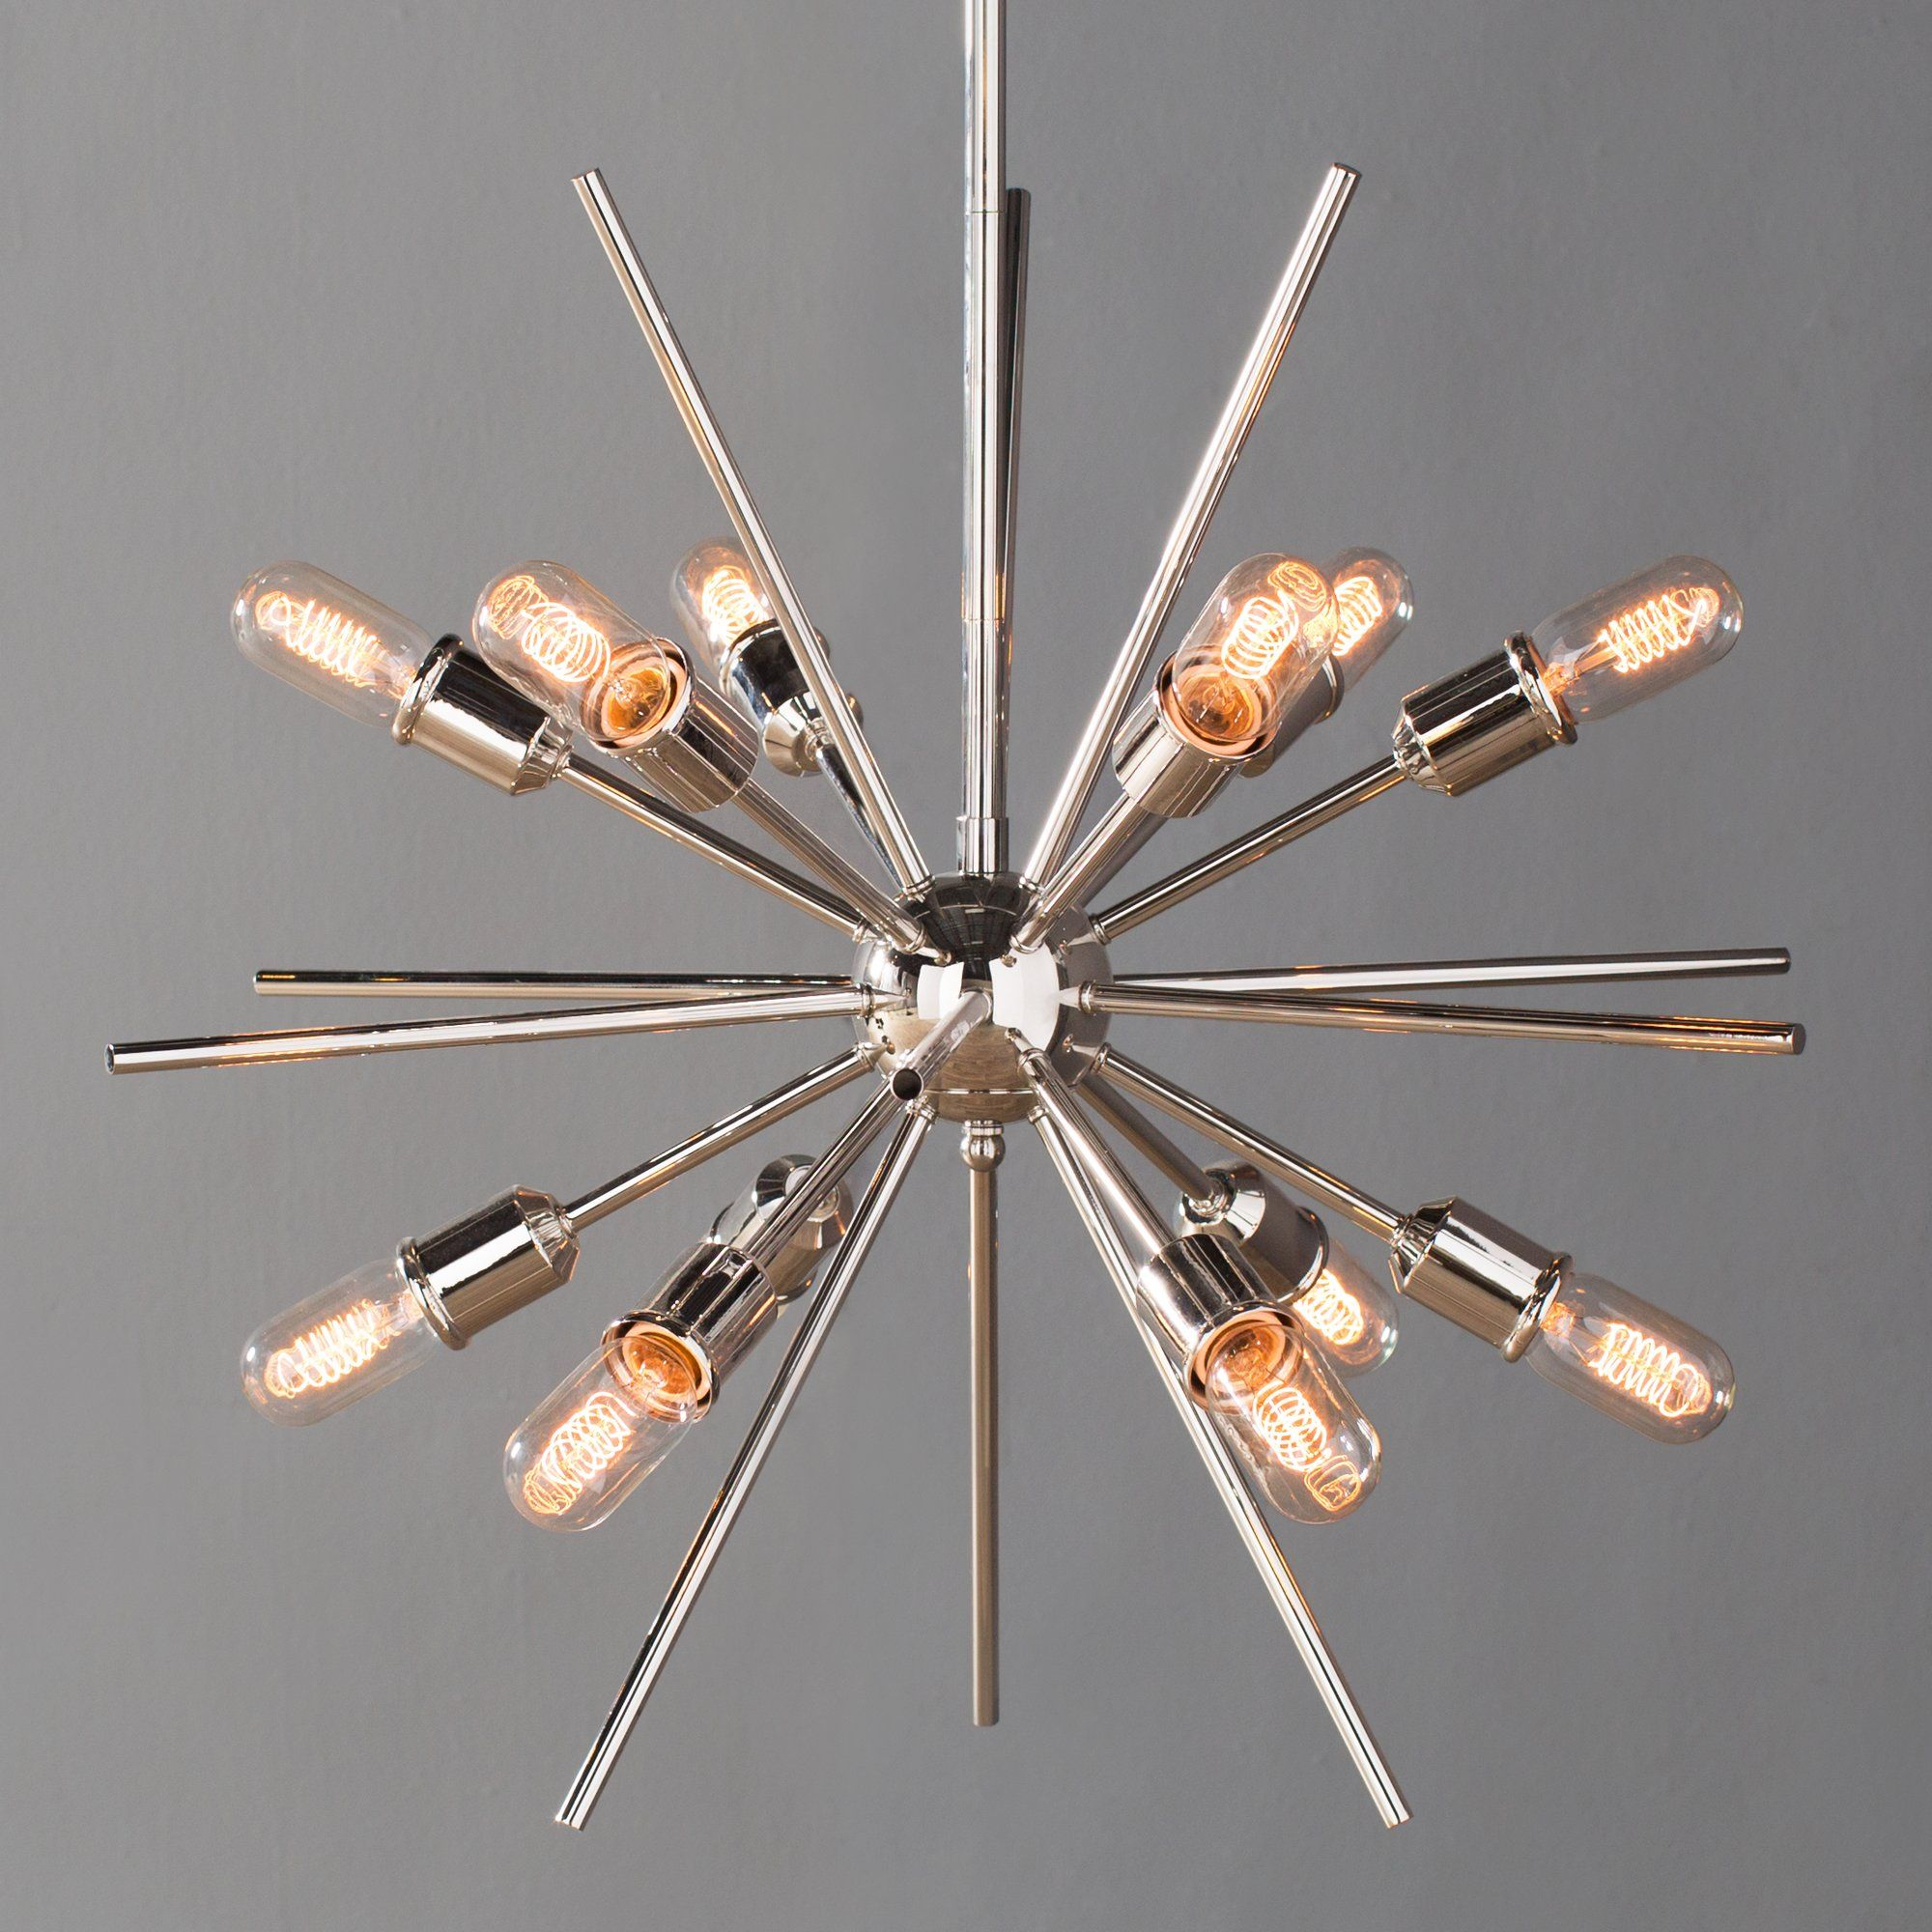 Corona 12 Light Sputnik Chandelier | House | Sputnik In Corona 12 Light Sputnik Chandeliers (View 4 of 30)